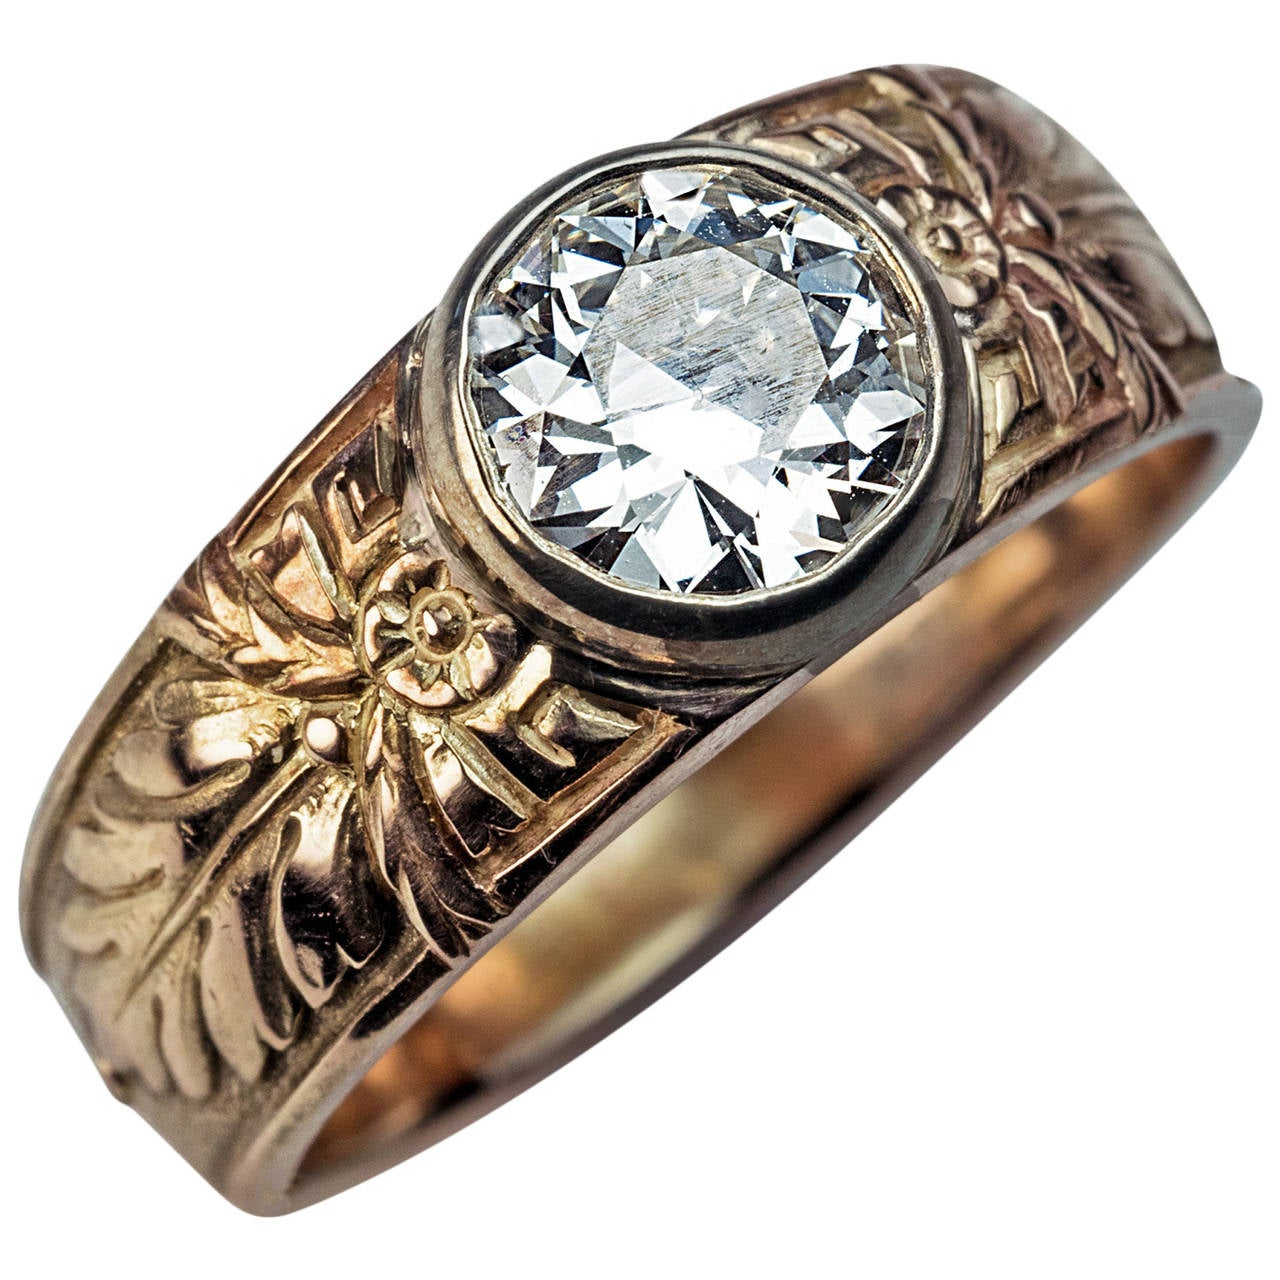 Antique Russian 1 Carat Diamond Gold Men's Ring For Sale